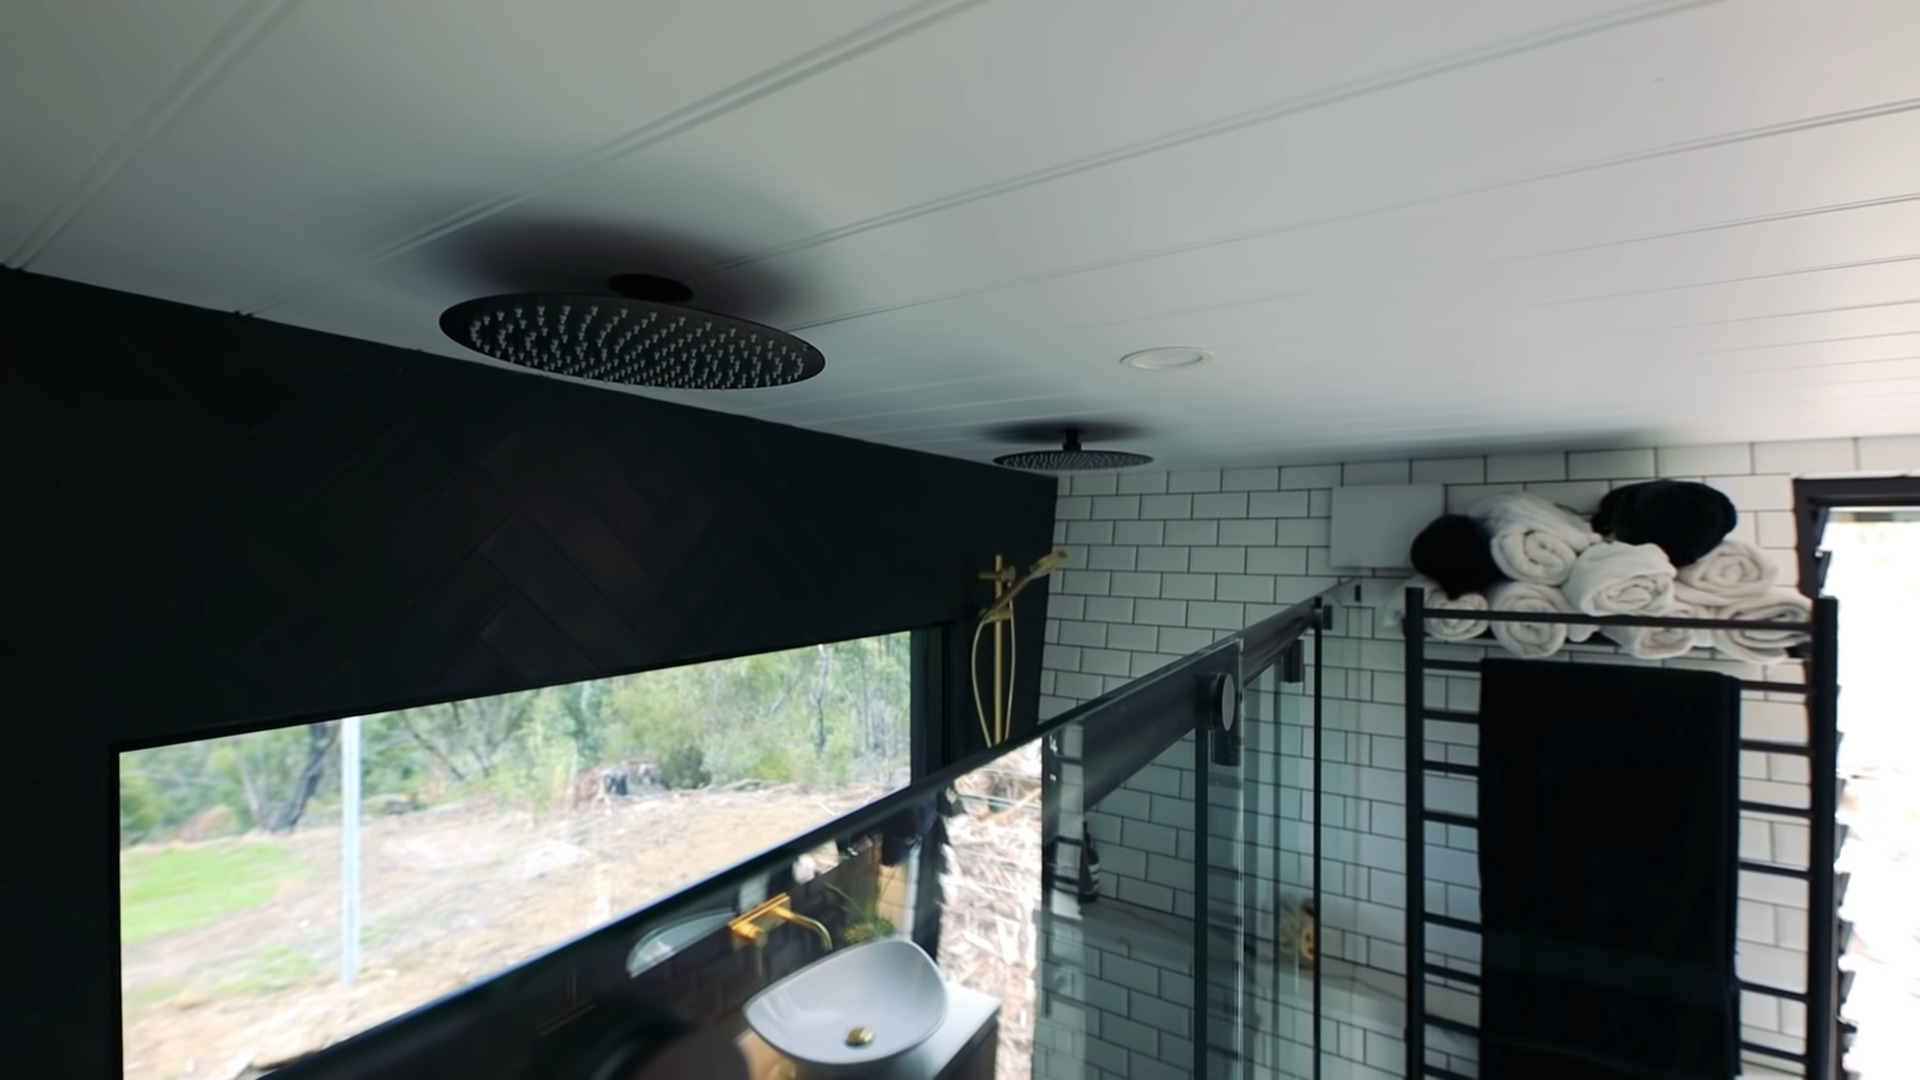 This Tiny House's full bathroom has a shower big enough for two which includes dual rain shower heads and a paneled ceiling.